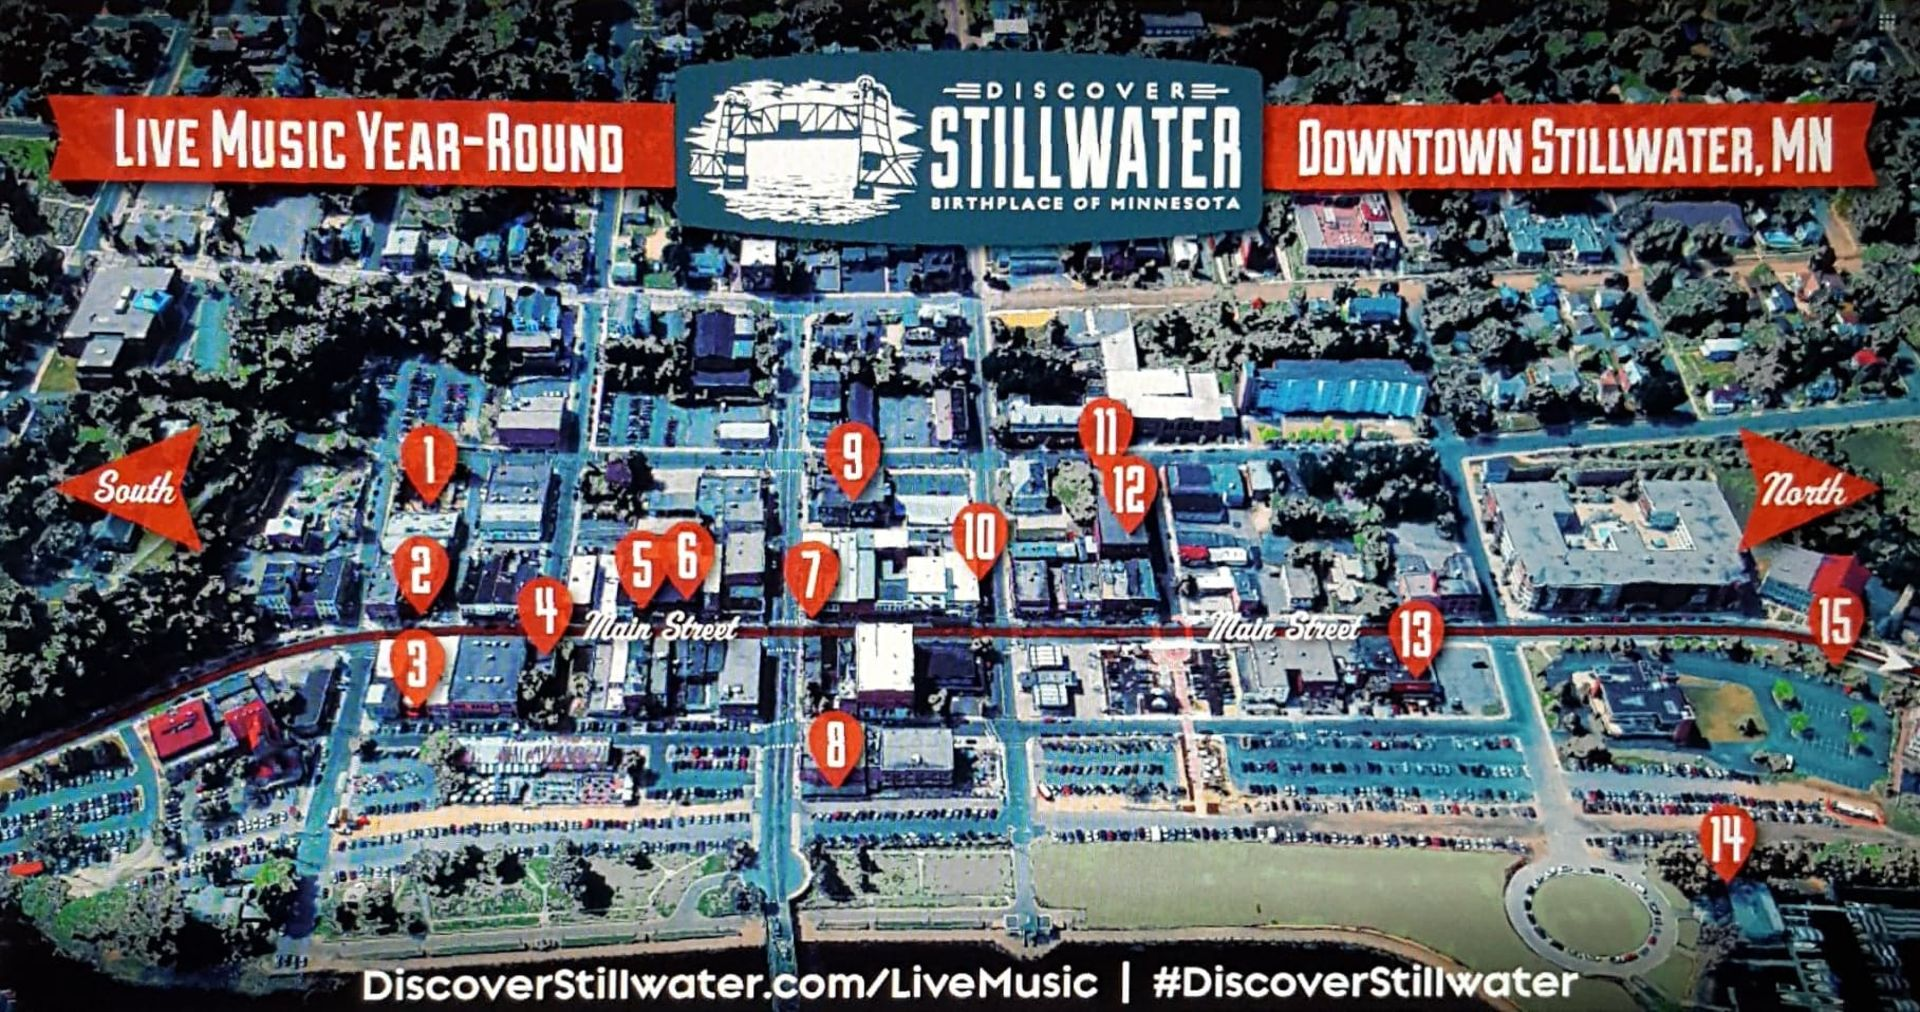 15 Live Music Venues In Downtown Stillwater!